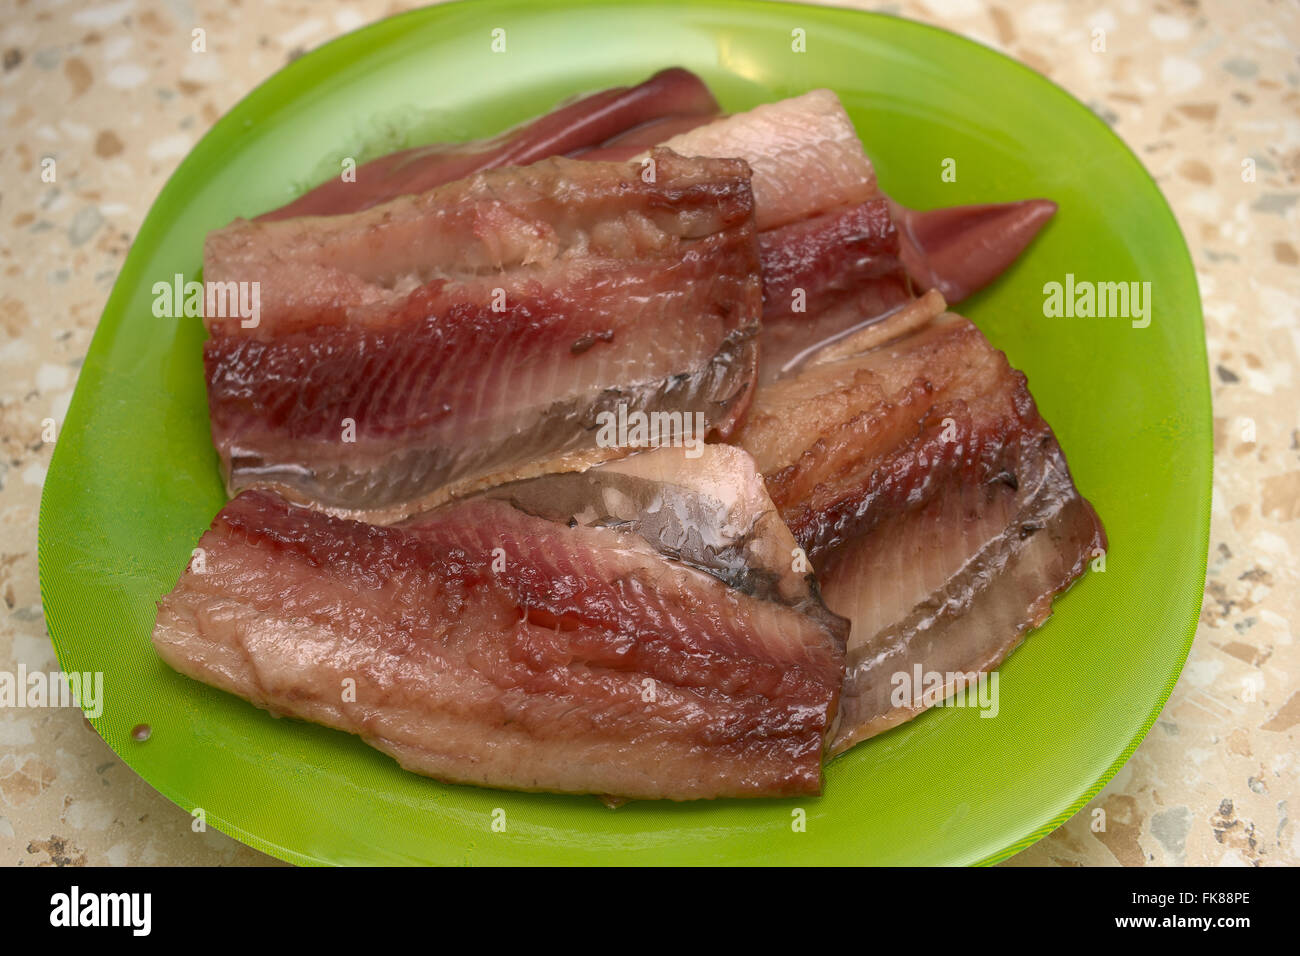 Purified herring on a plate. - Stock Image